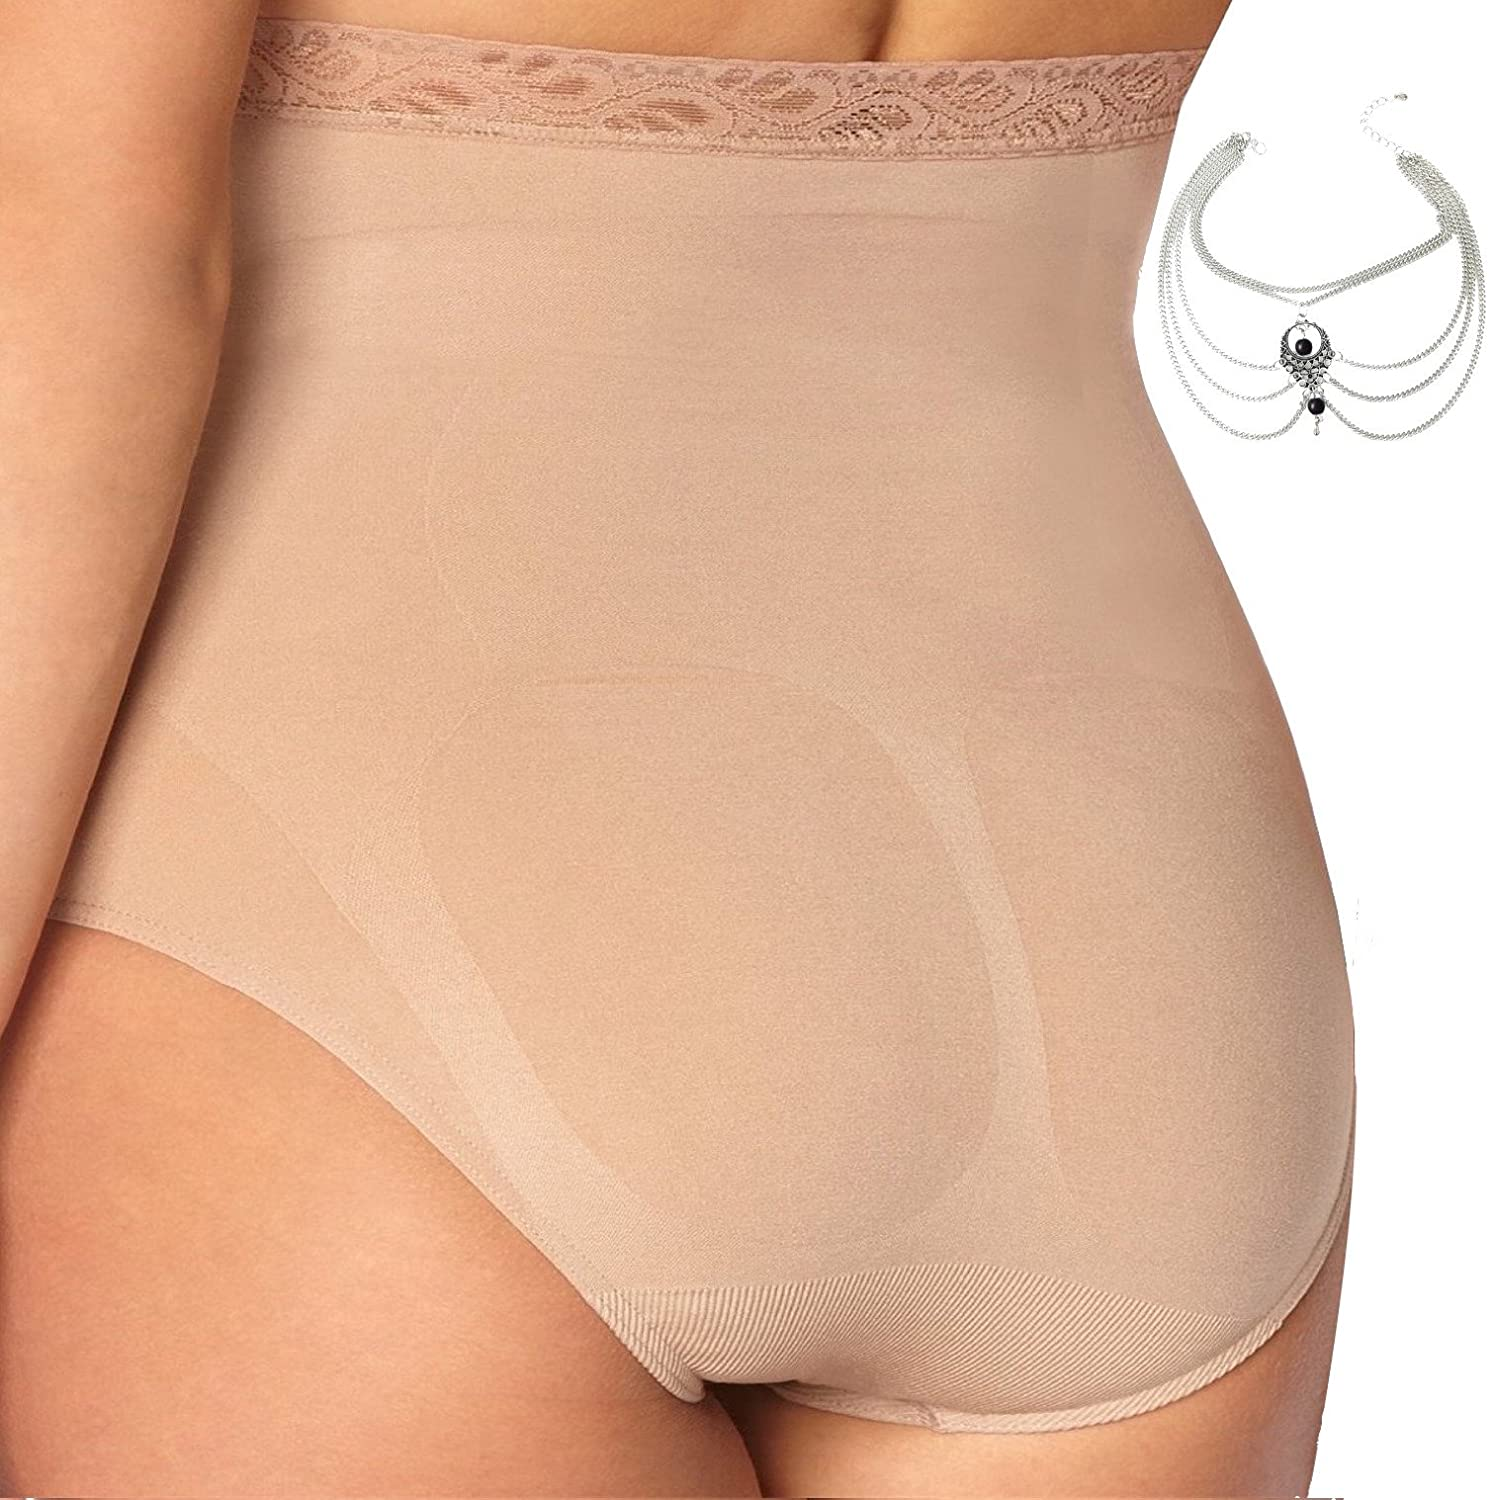 91f1d35391ce Body Wrap Plus Size High Waist Seamless Panty Brief Firm Control Shapewear  Women at Amazon Women s Clothing store